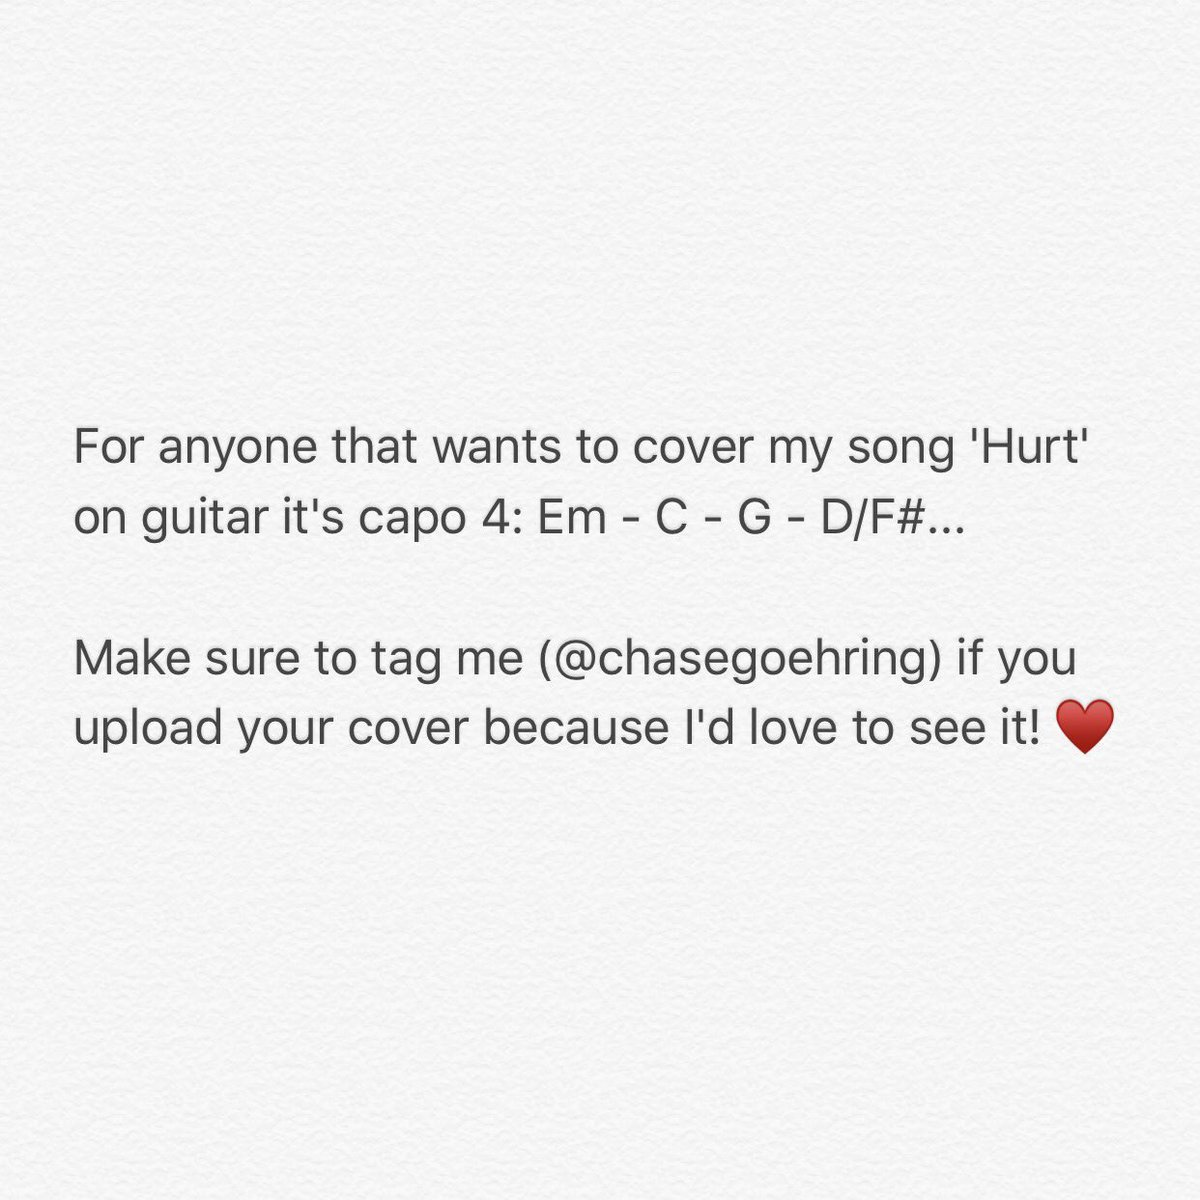 Chase Goehring On Twitter For Anyone That Wants To Cover My Song